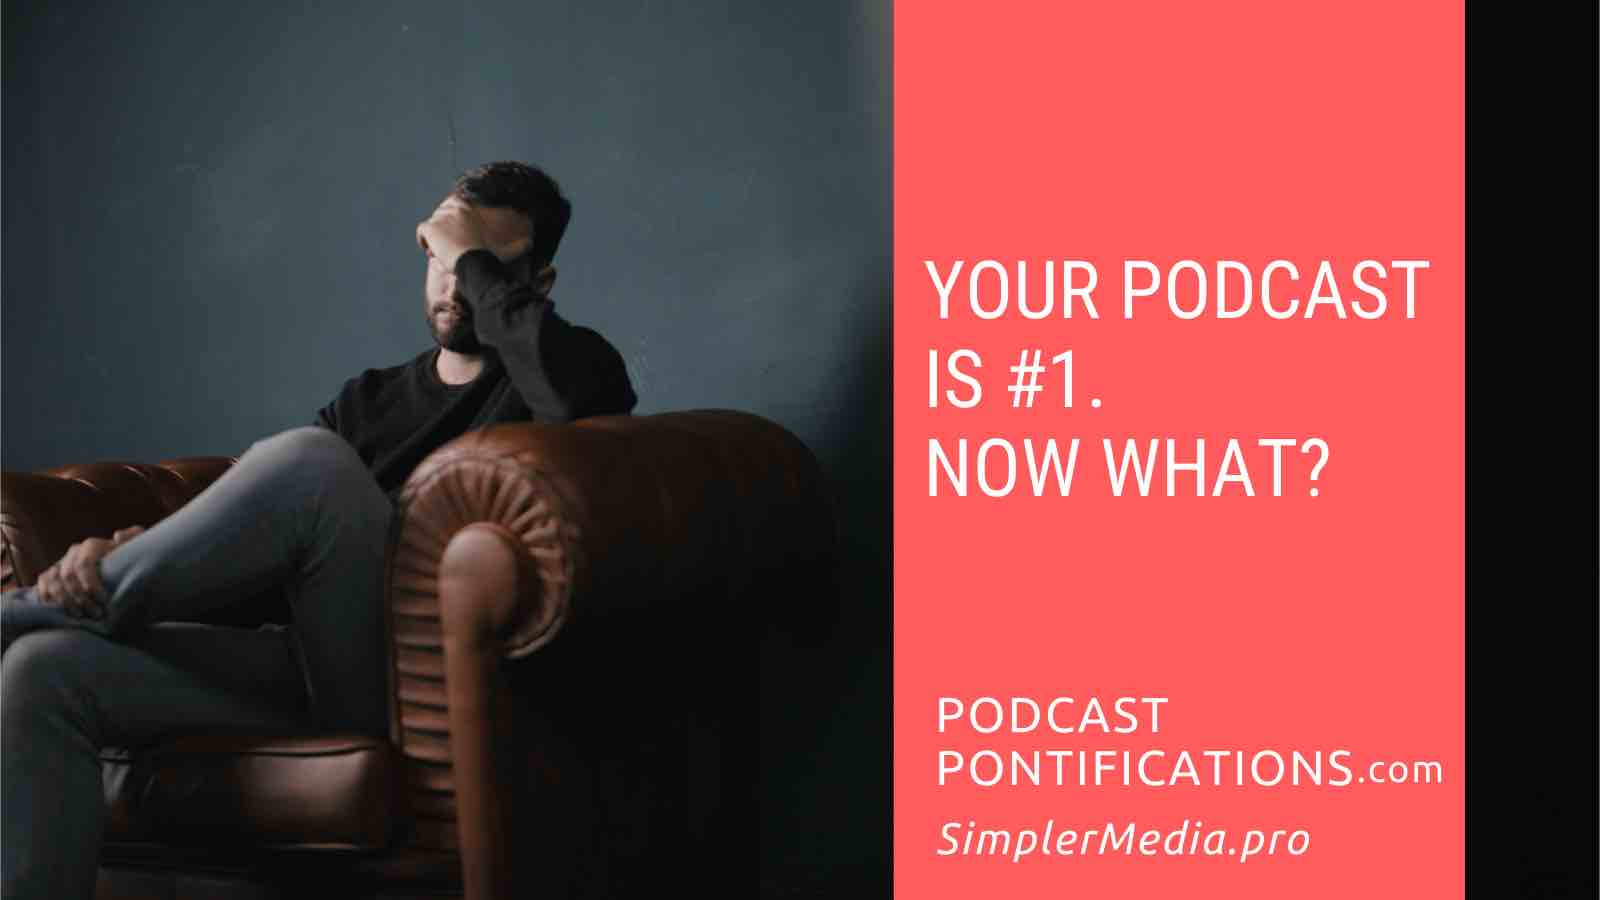 Your Podcast Is #1. Now What?